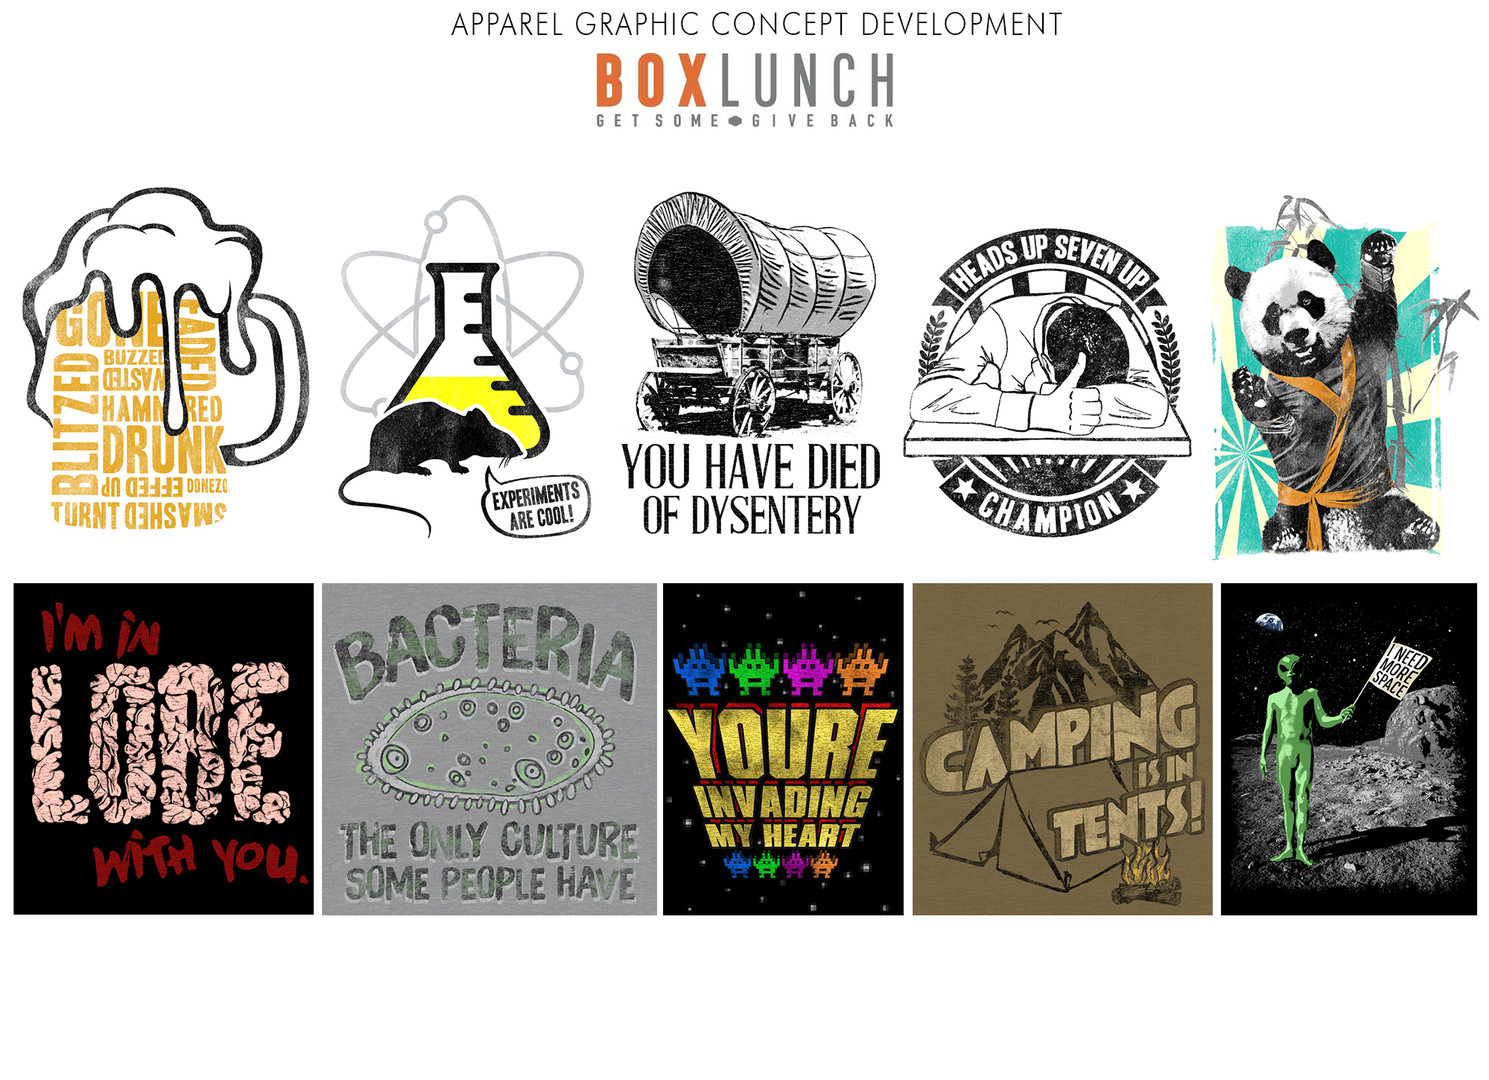 Apparel graphic concept development for Box Lunch.